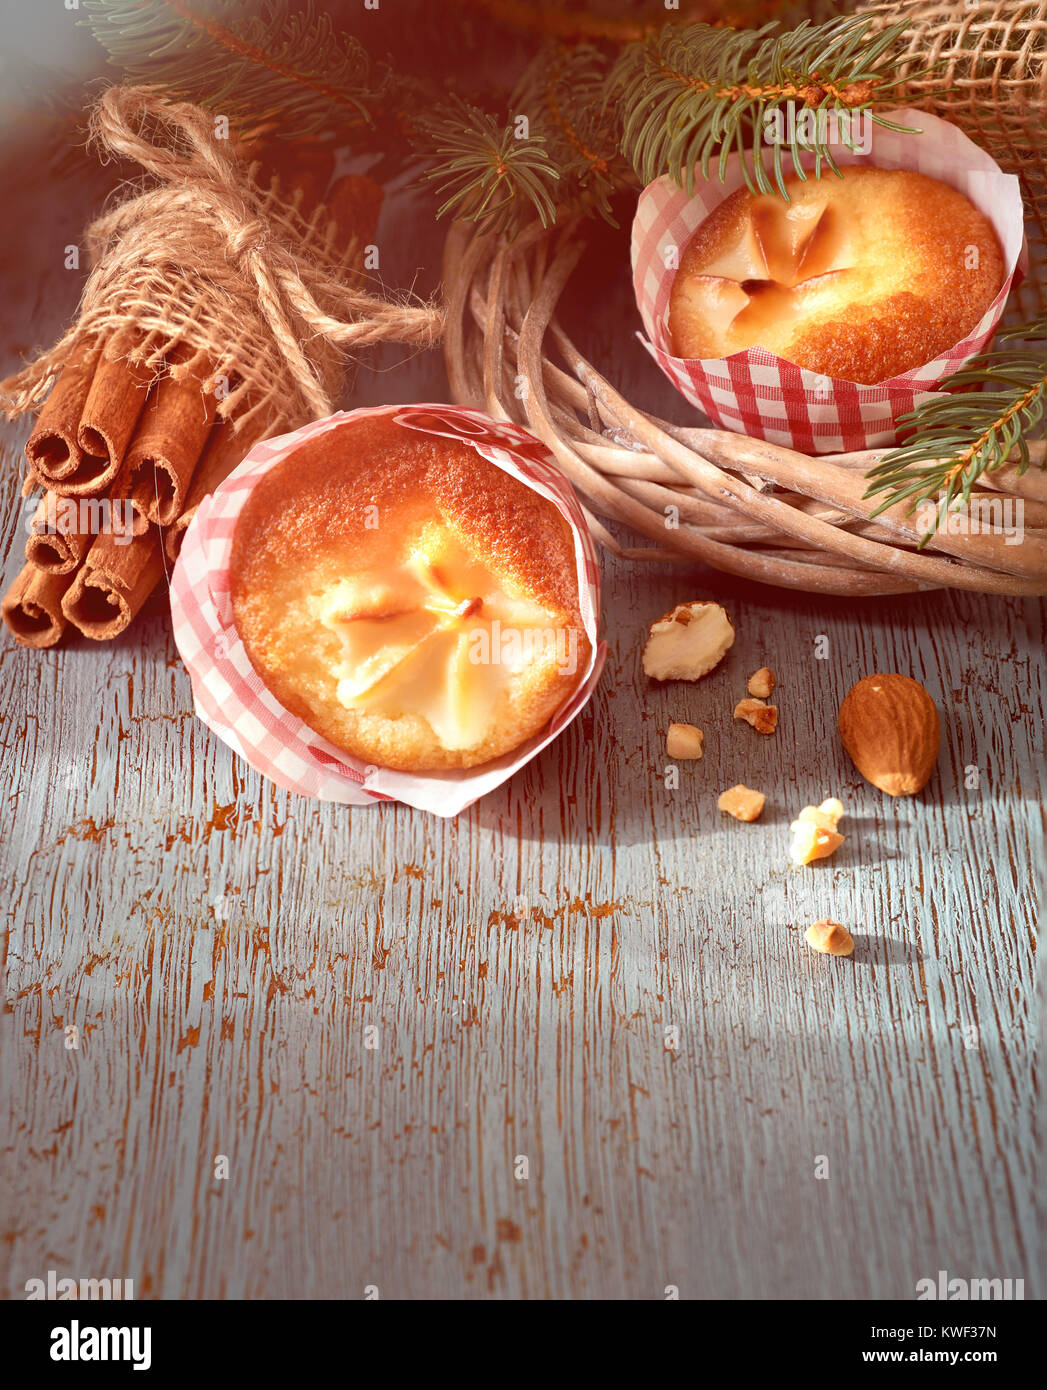 Lemon mini muffins with floral decoration in red-white paper on rustic wooden table with Christmas twigs, almonds - Stock Image